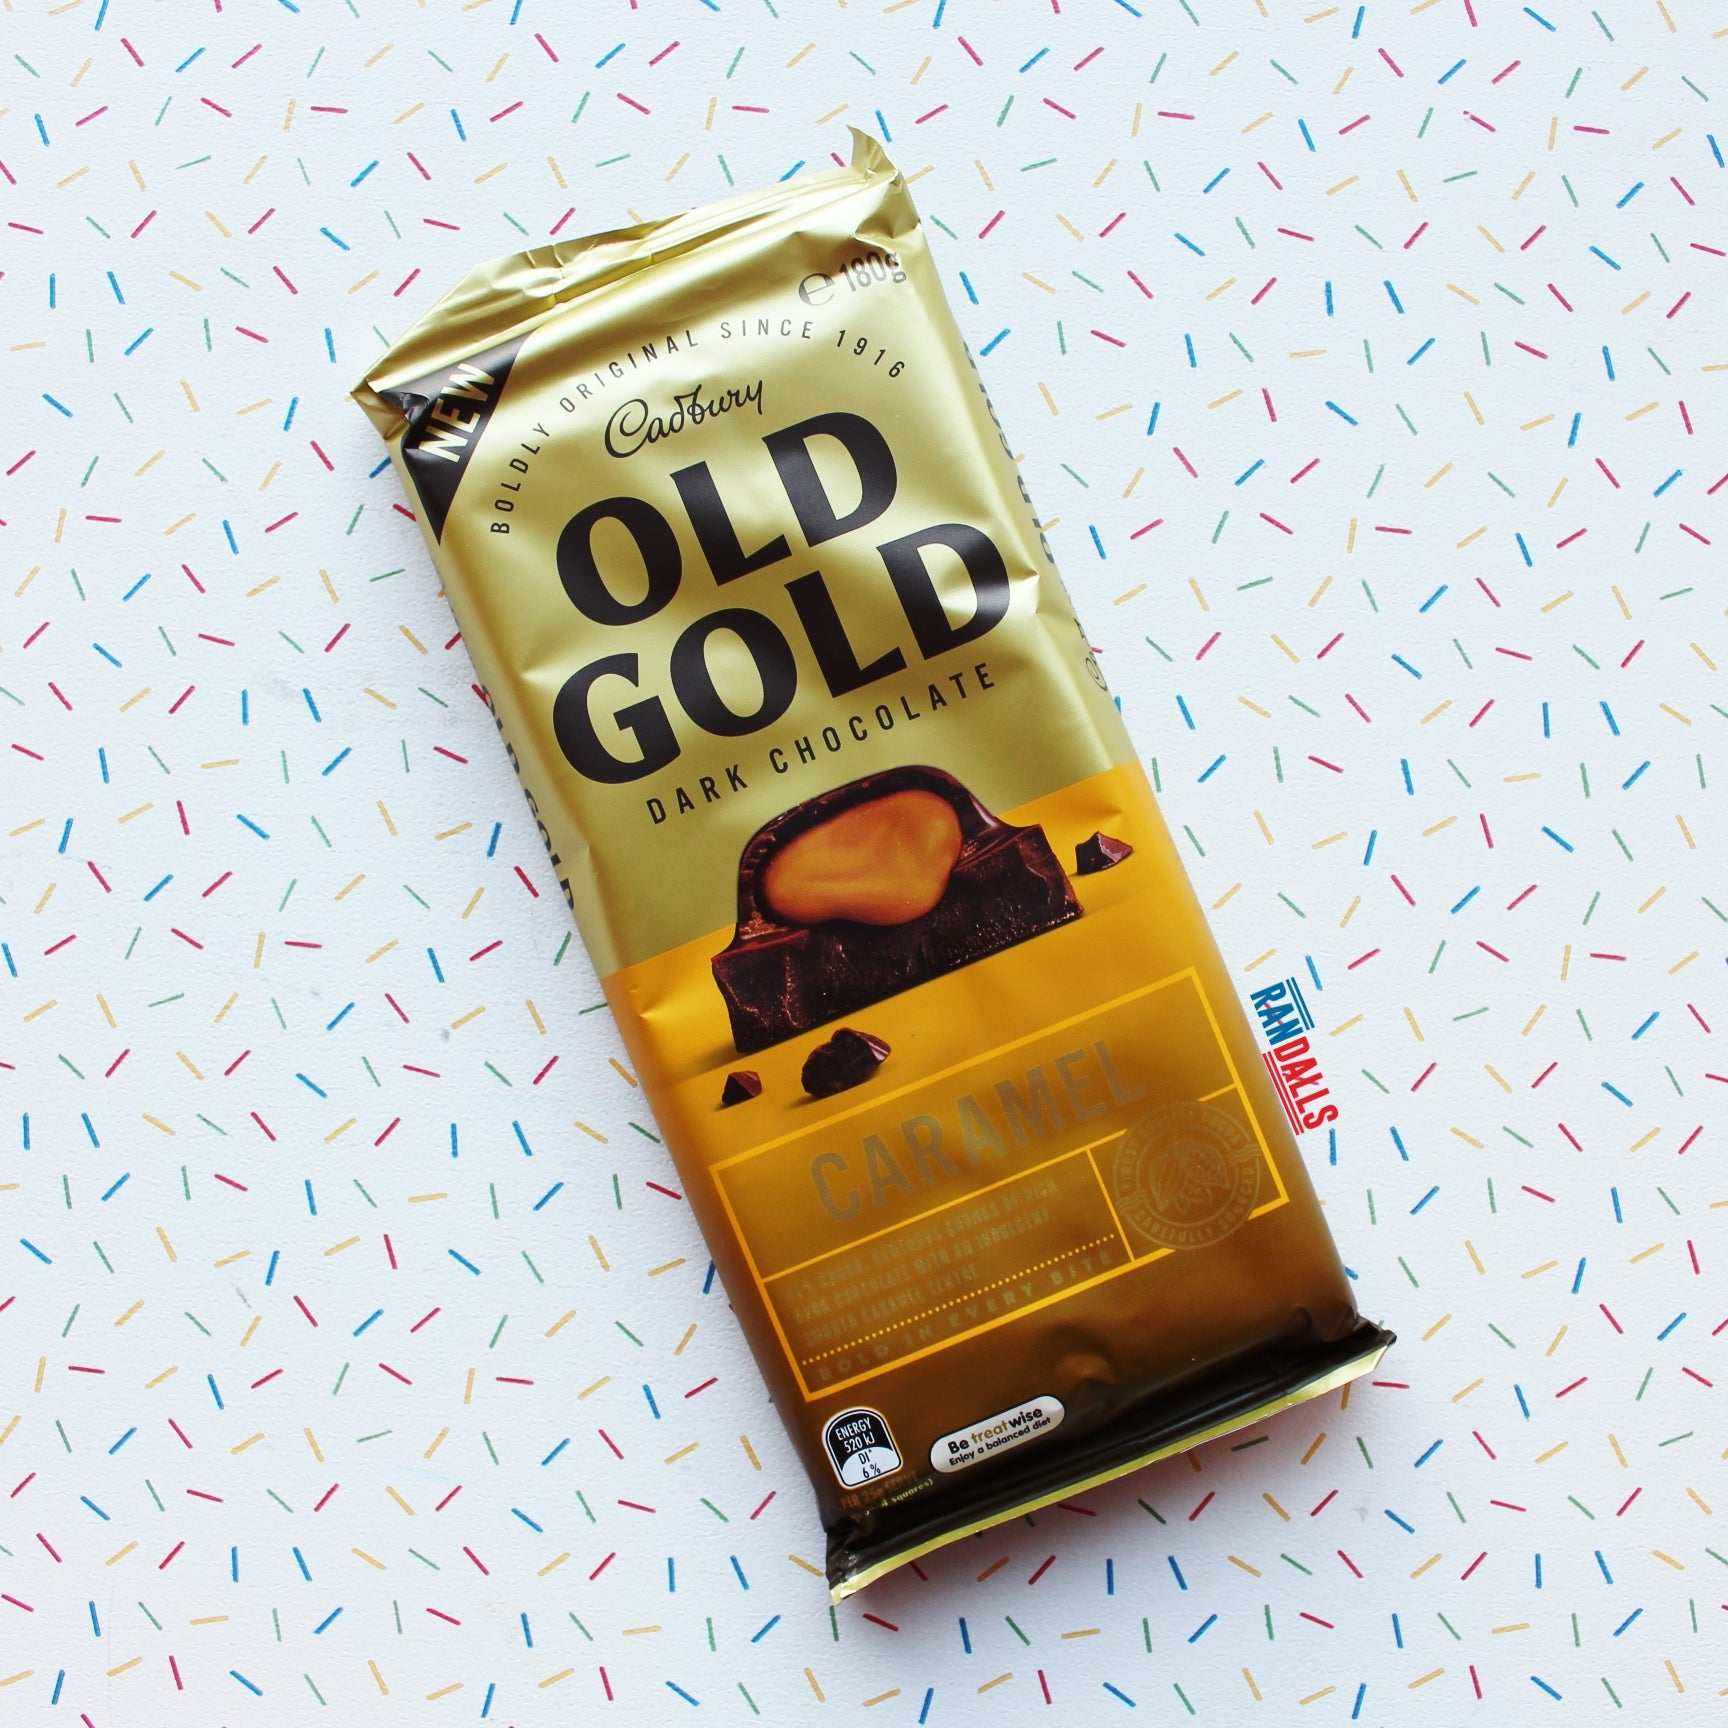 CADBURY OLD GOLD CARAMEL LARGE (AUSTRALIA)